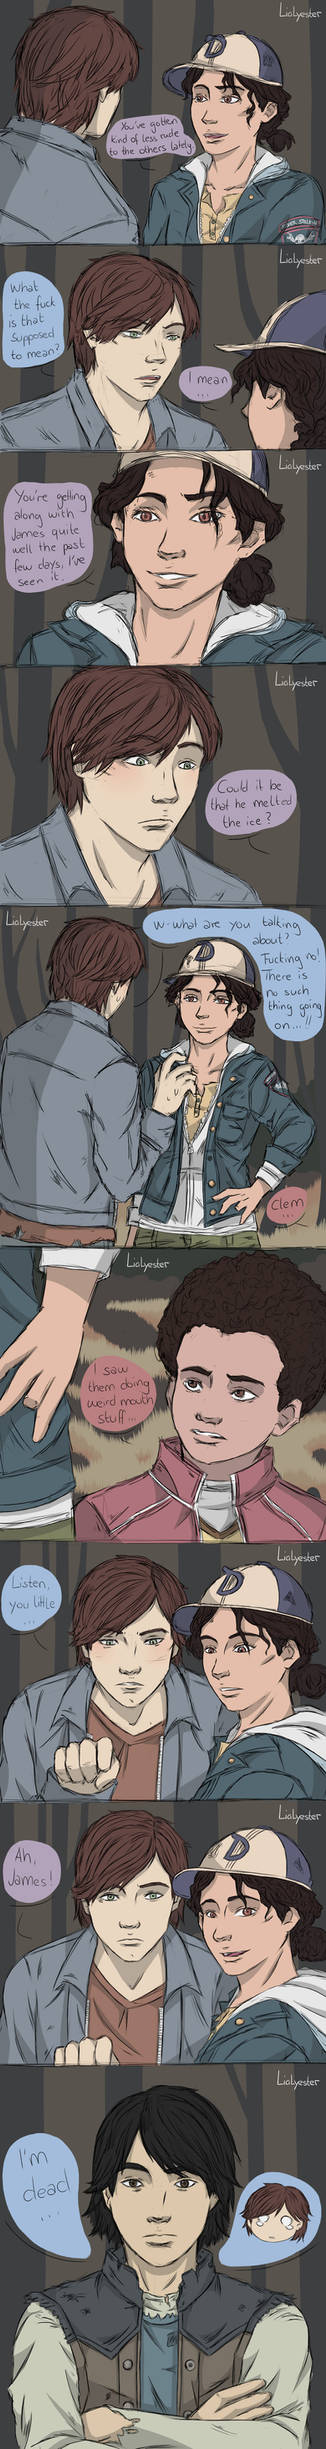 [Telltale TWD] James x Mitch Comic